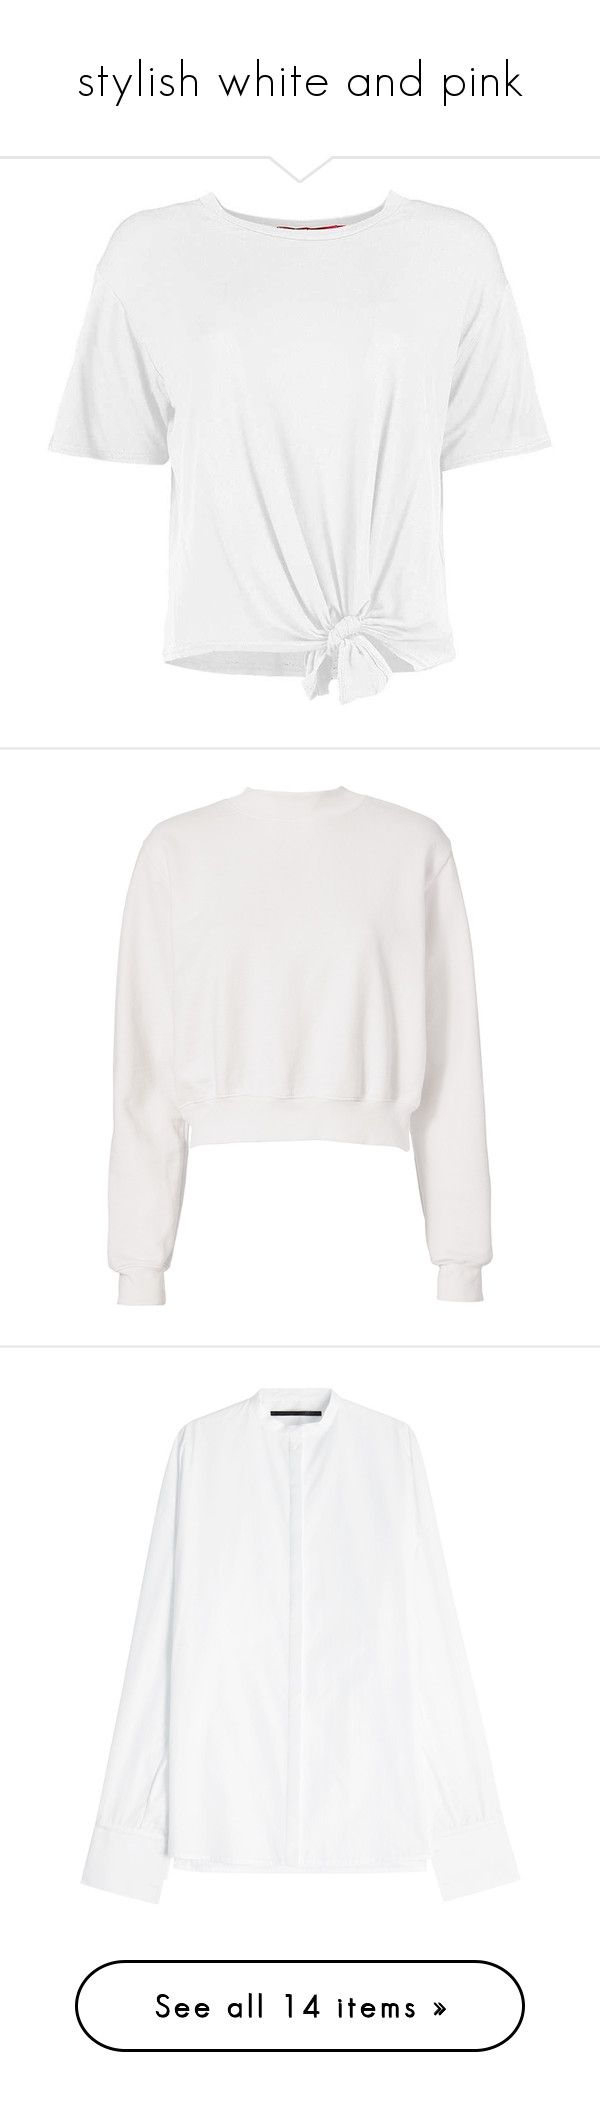 """""""stylish white and pink"""" by m-gorodetskaya ❤ liked on Polyvore featuring tops, t-shirts, shirts, blusas, off-shoulder crop tops, off the shoulder t shirt, off shoulder t shirt, jersey shirt, white polka dot shirt and hoodies"""